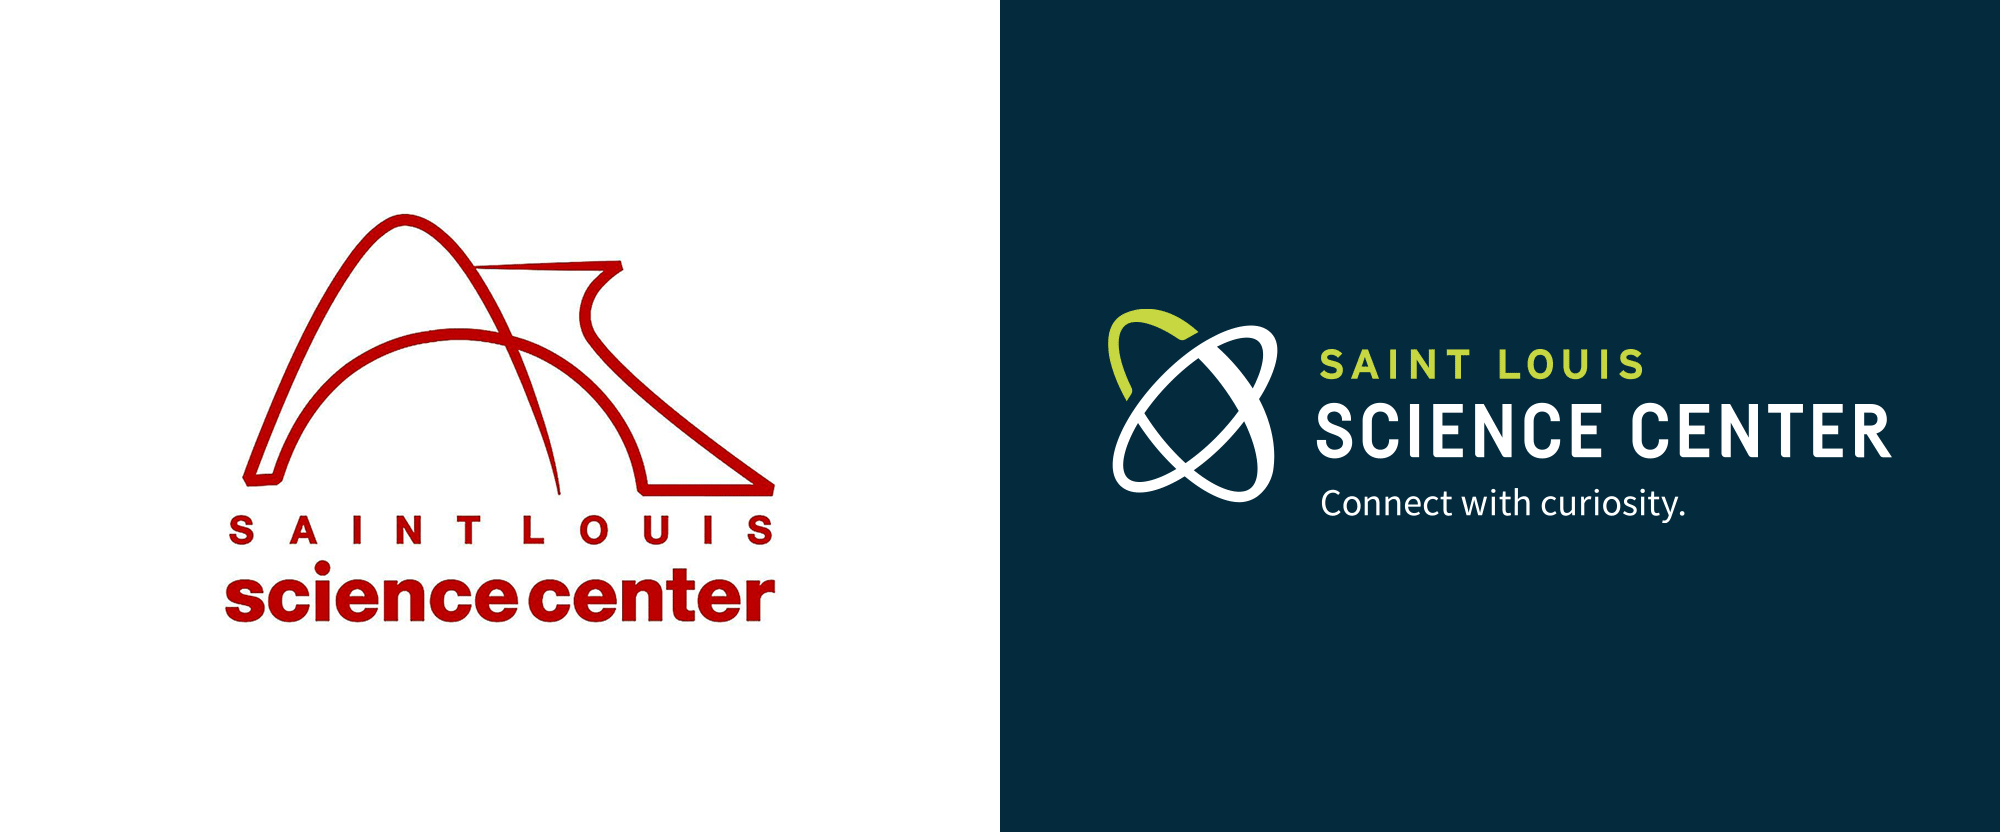 New Logo for Saint Louis Science Center by Atomicdust